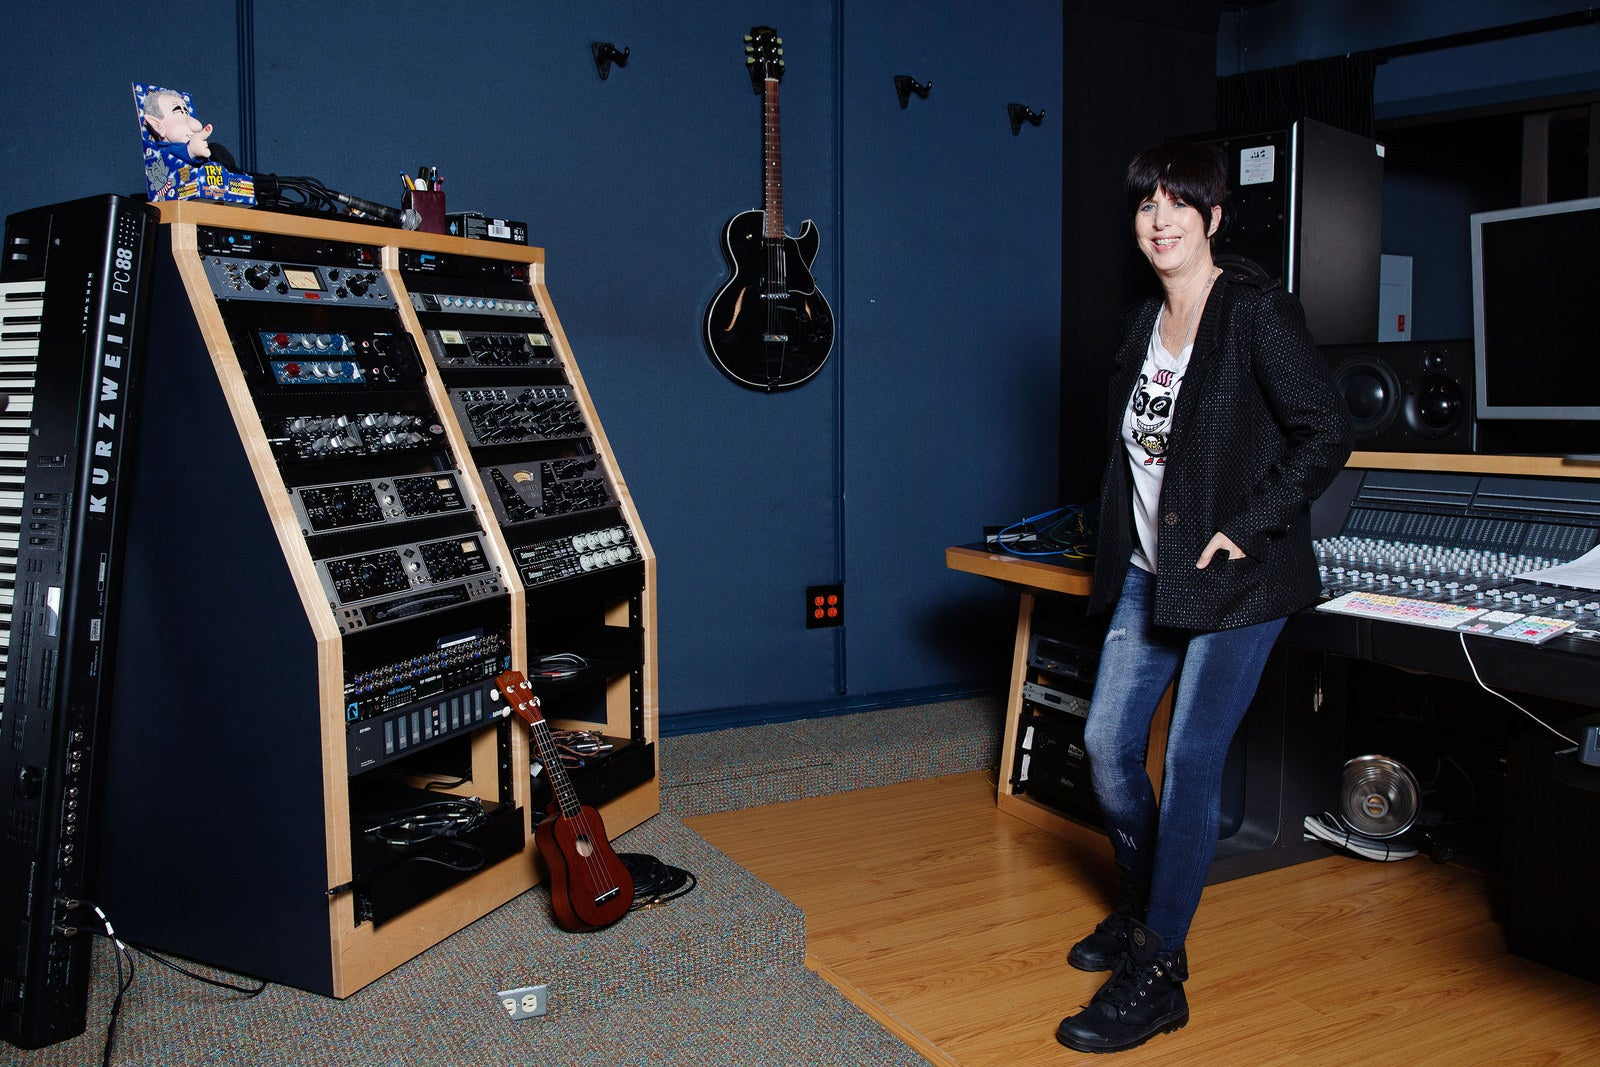 Warren in one of the two recording studios in the Realsongs office.